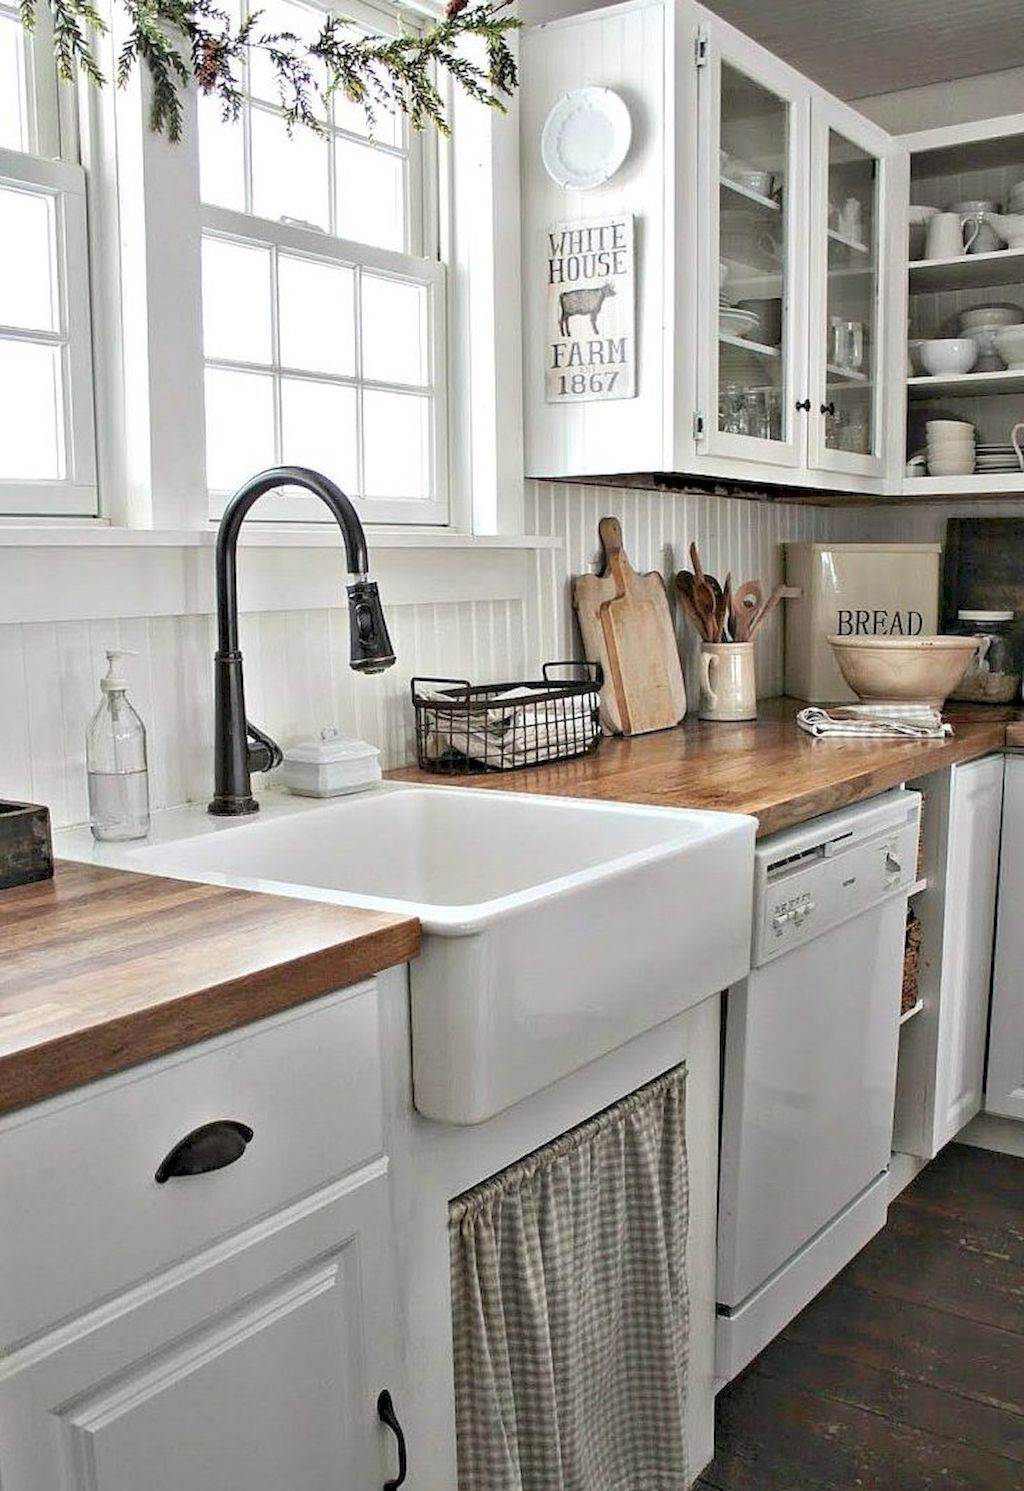 Küche Dekorieren Ideen Pin Von Kourtney Paige Auf Home Ideas Kitchen Farmhouse Sink